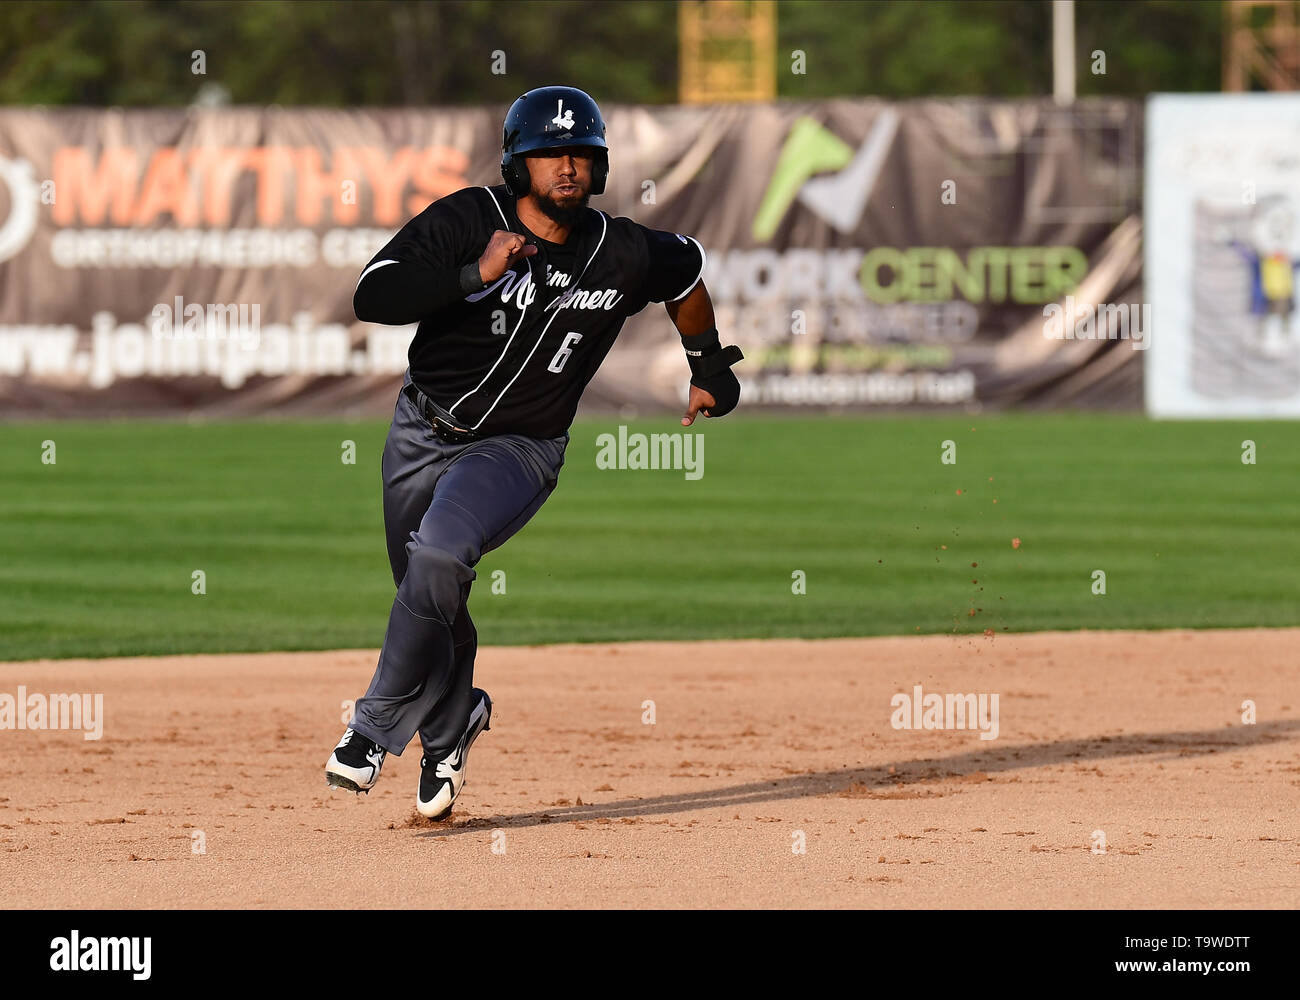 Fargo, ND, USA. 20th May, 2019. Milwaukee Milkmen Jose Rosario (6) races to third base during the FM Redhawks game against the Milwaukee Milkmen in American Association professional baseball at Newman Outdoor Field in Fargo, ND. Milwaukee won 5-3. Photo by Russell Hons/CSM/Alamy Live News - Stock Image